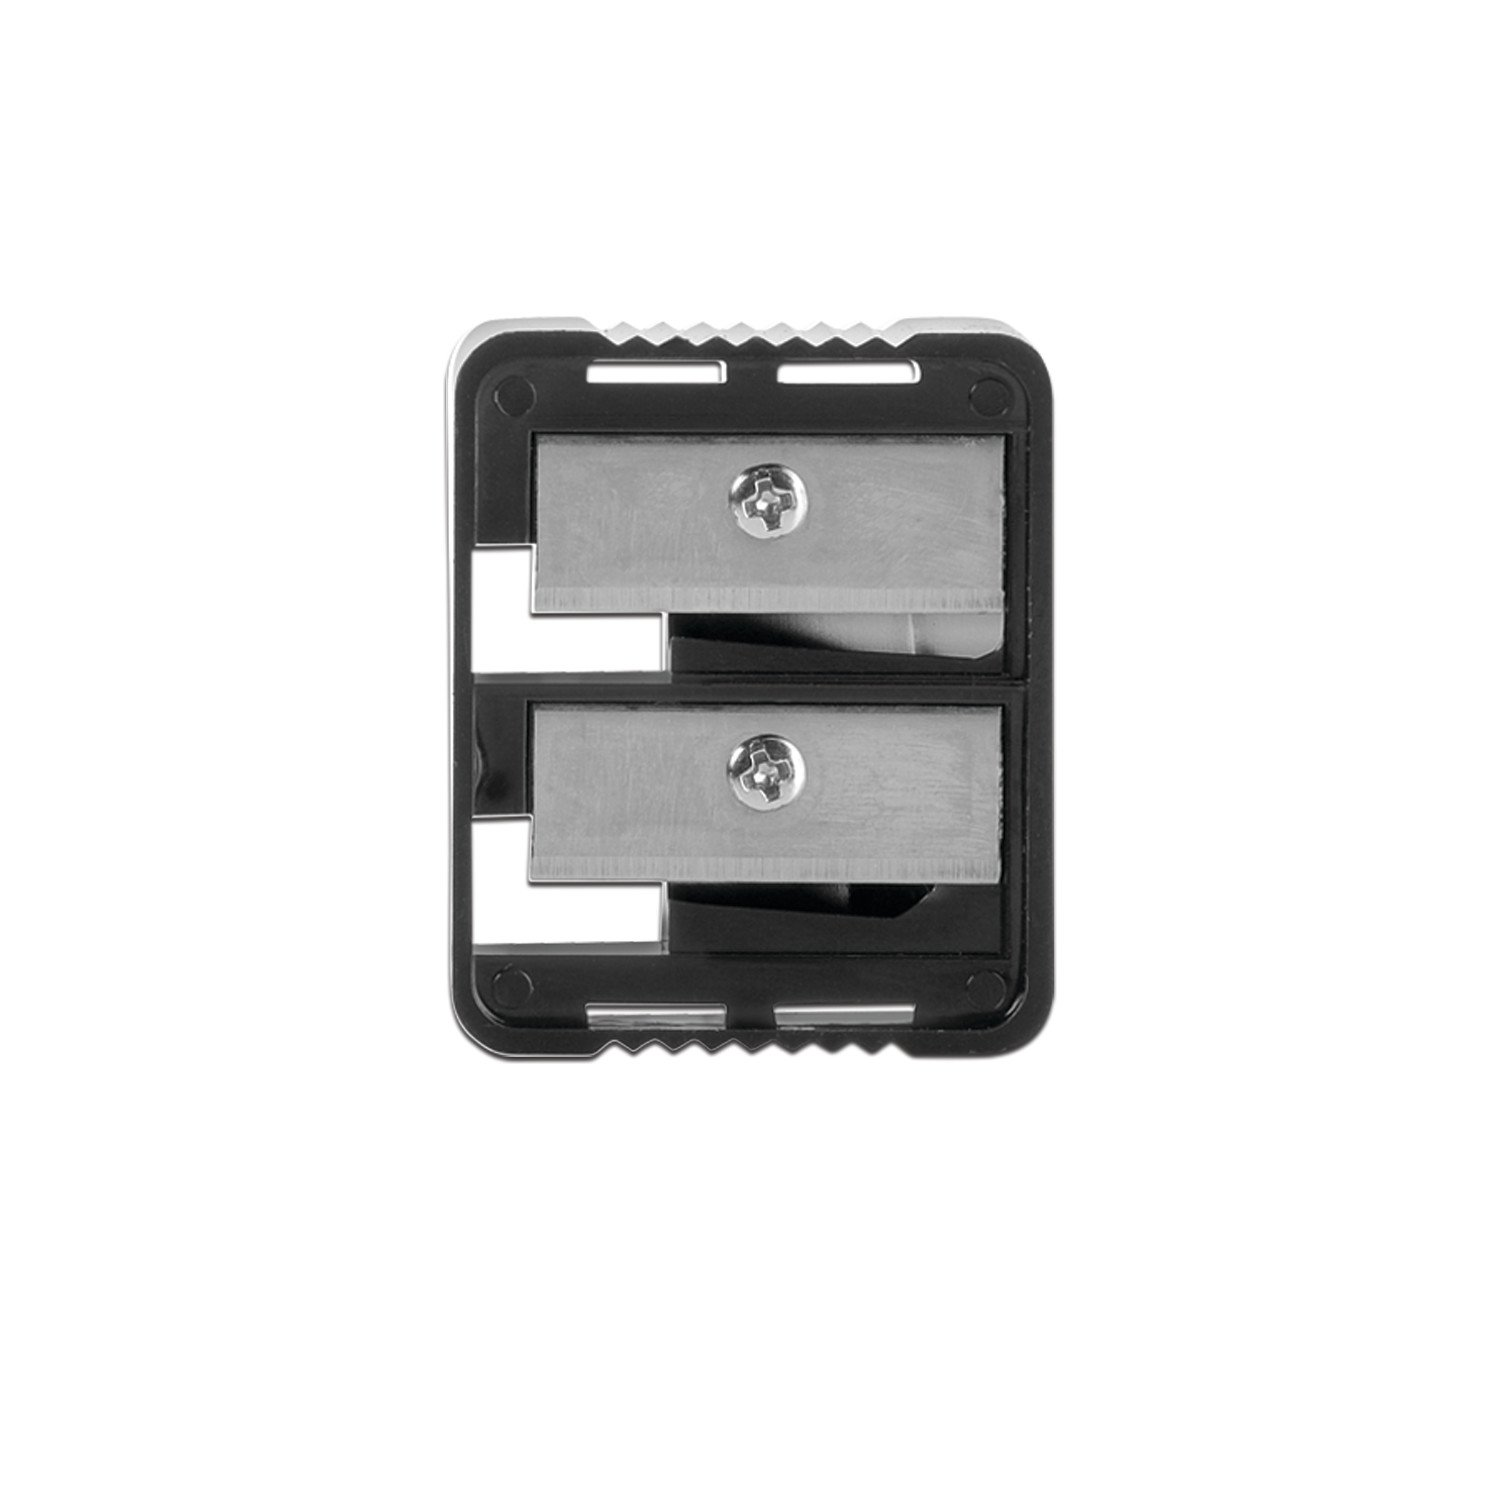 wet n wild Dual Pencil Sharpener, 1 Count Markwins Beauty Products 770B